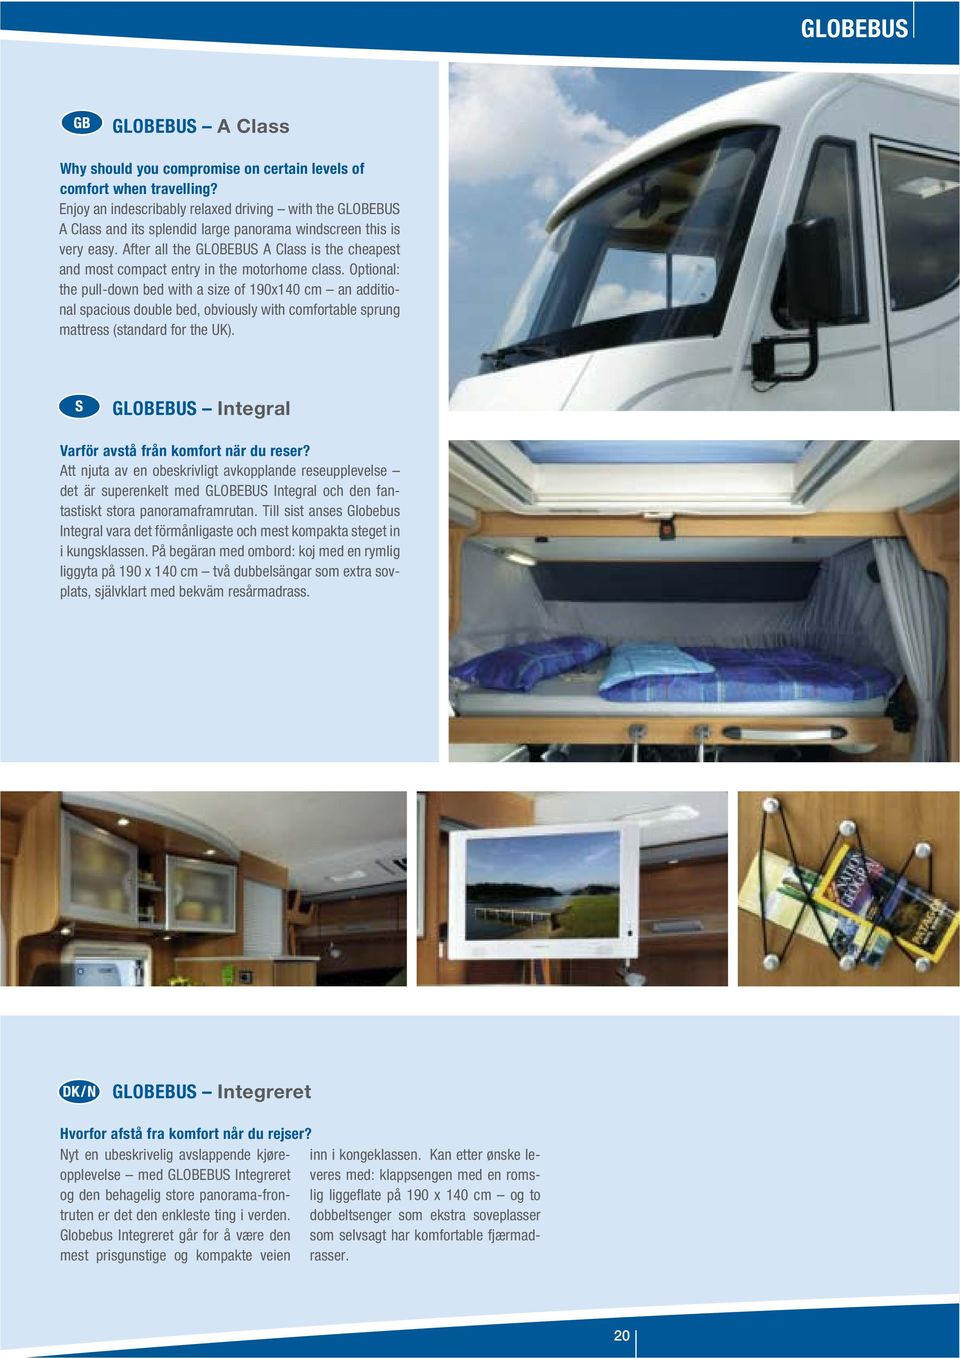 After all the GLOBEBUS A Class is the cheapest and most compact entry in the motorhome class.